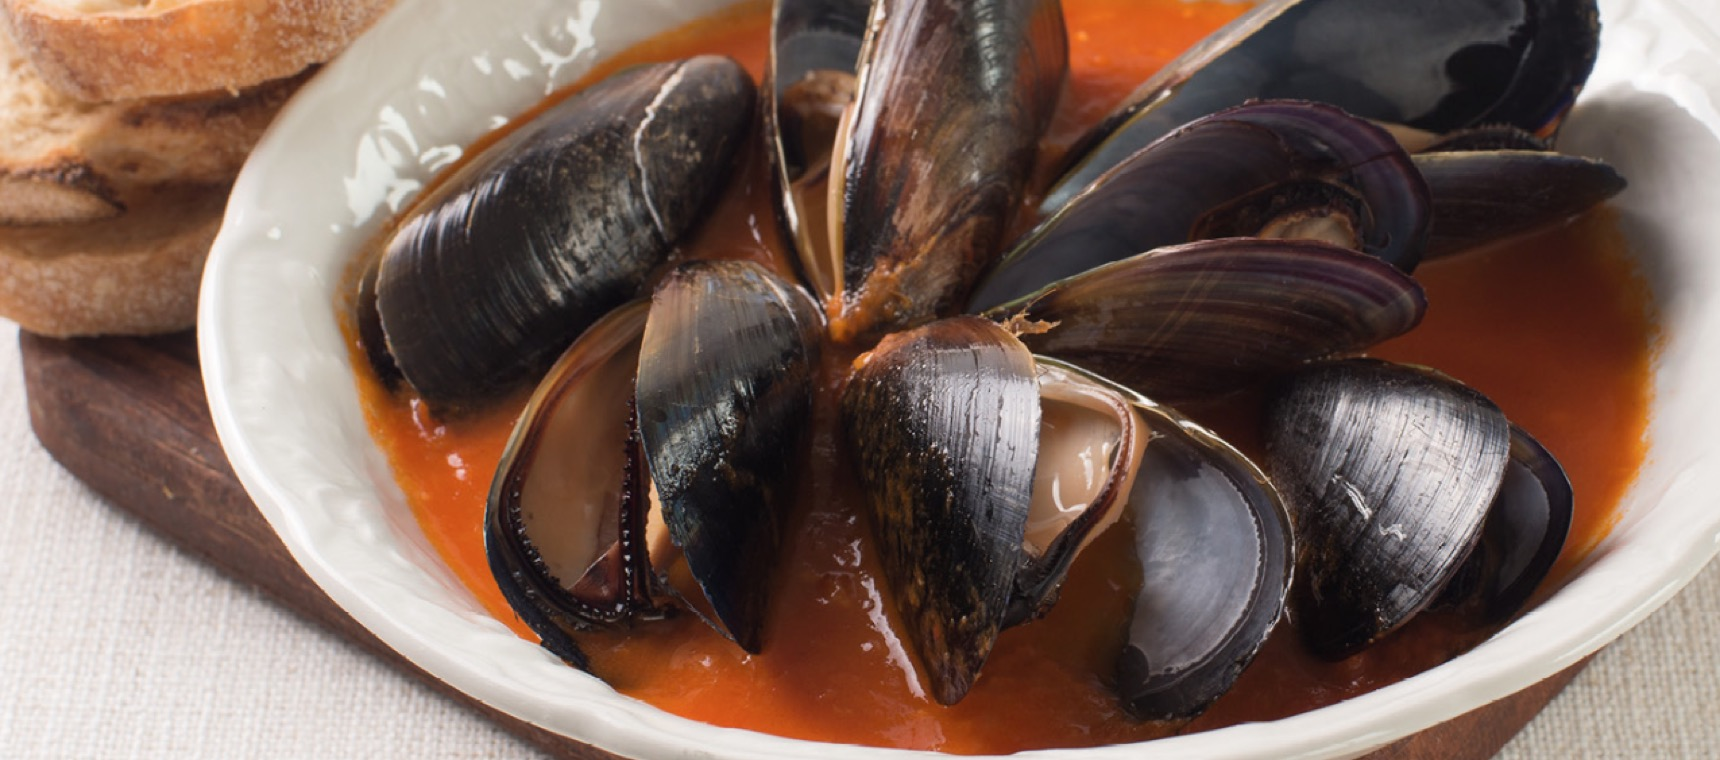 Steamed Mussels with Garlic Tomato Sauce